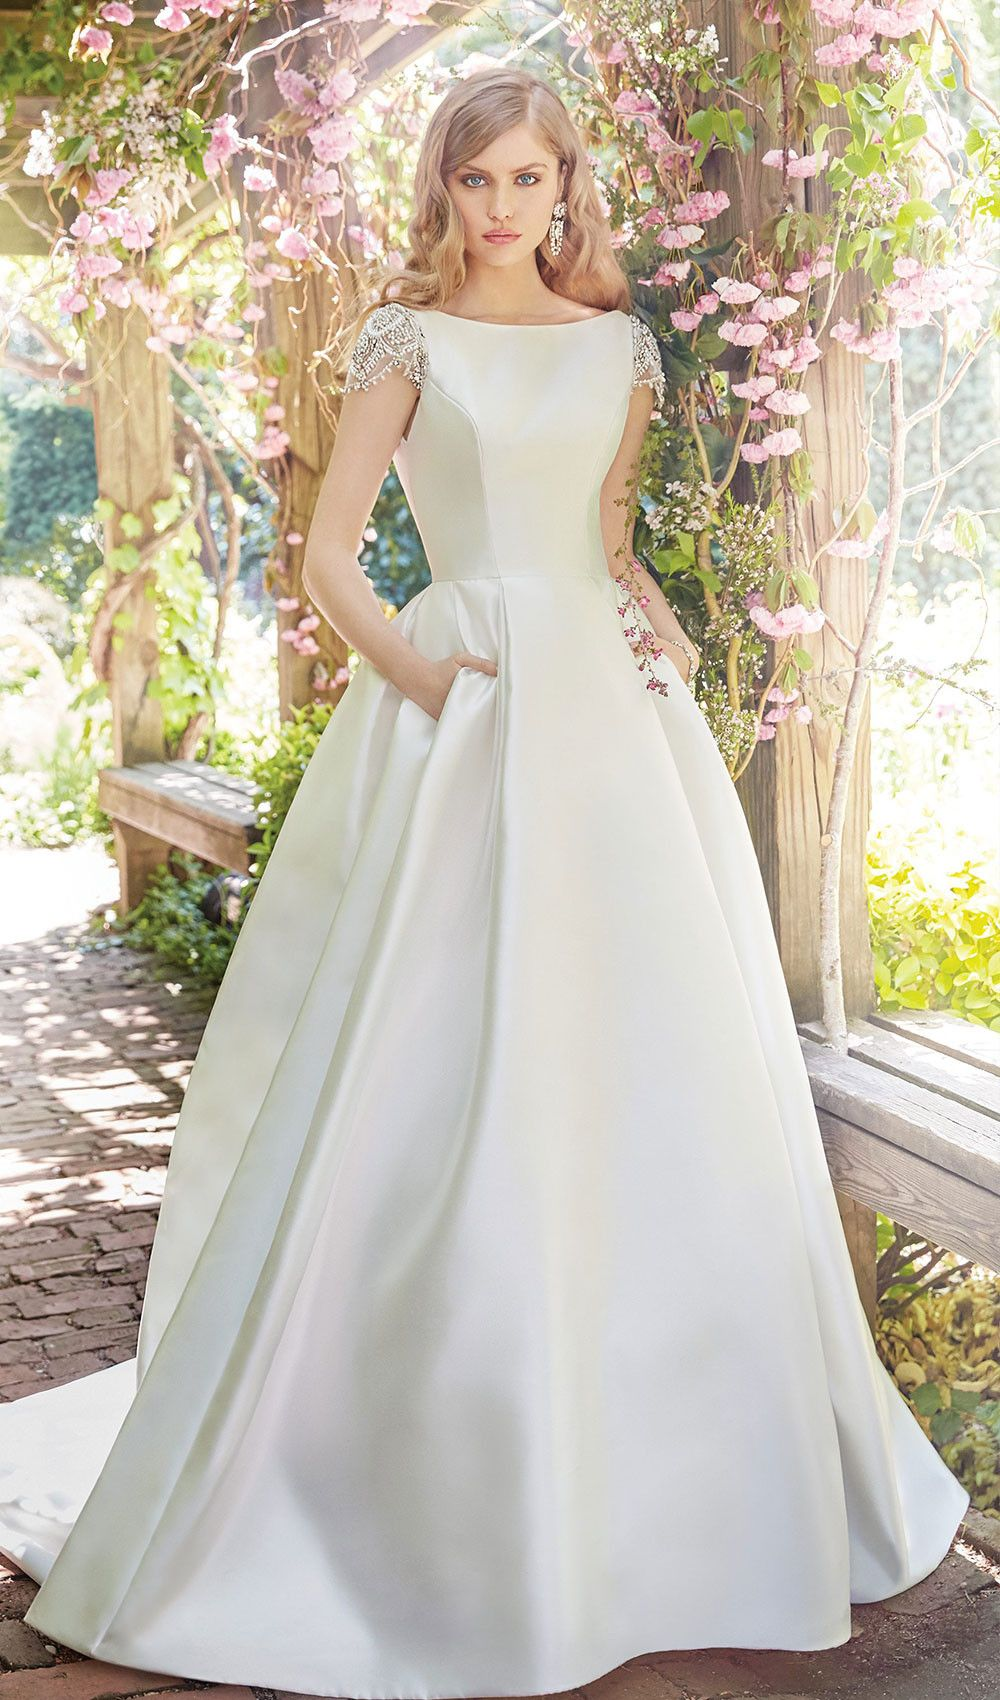 Try this white mikado modest wedding dress with jeweled cap sleeves